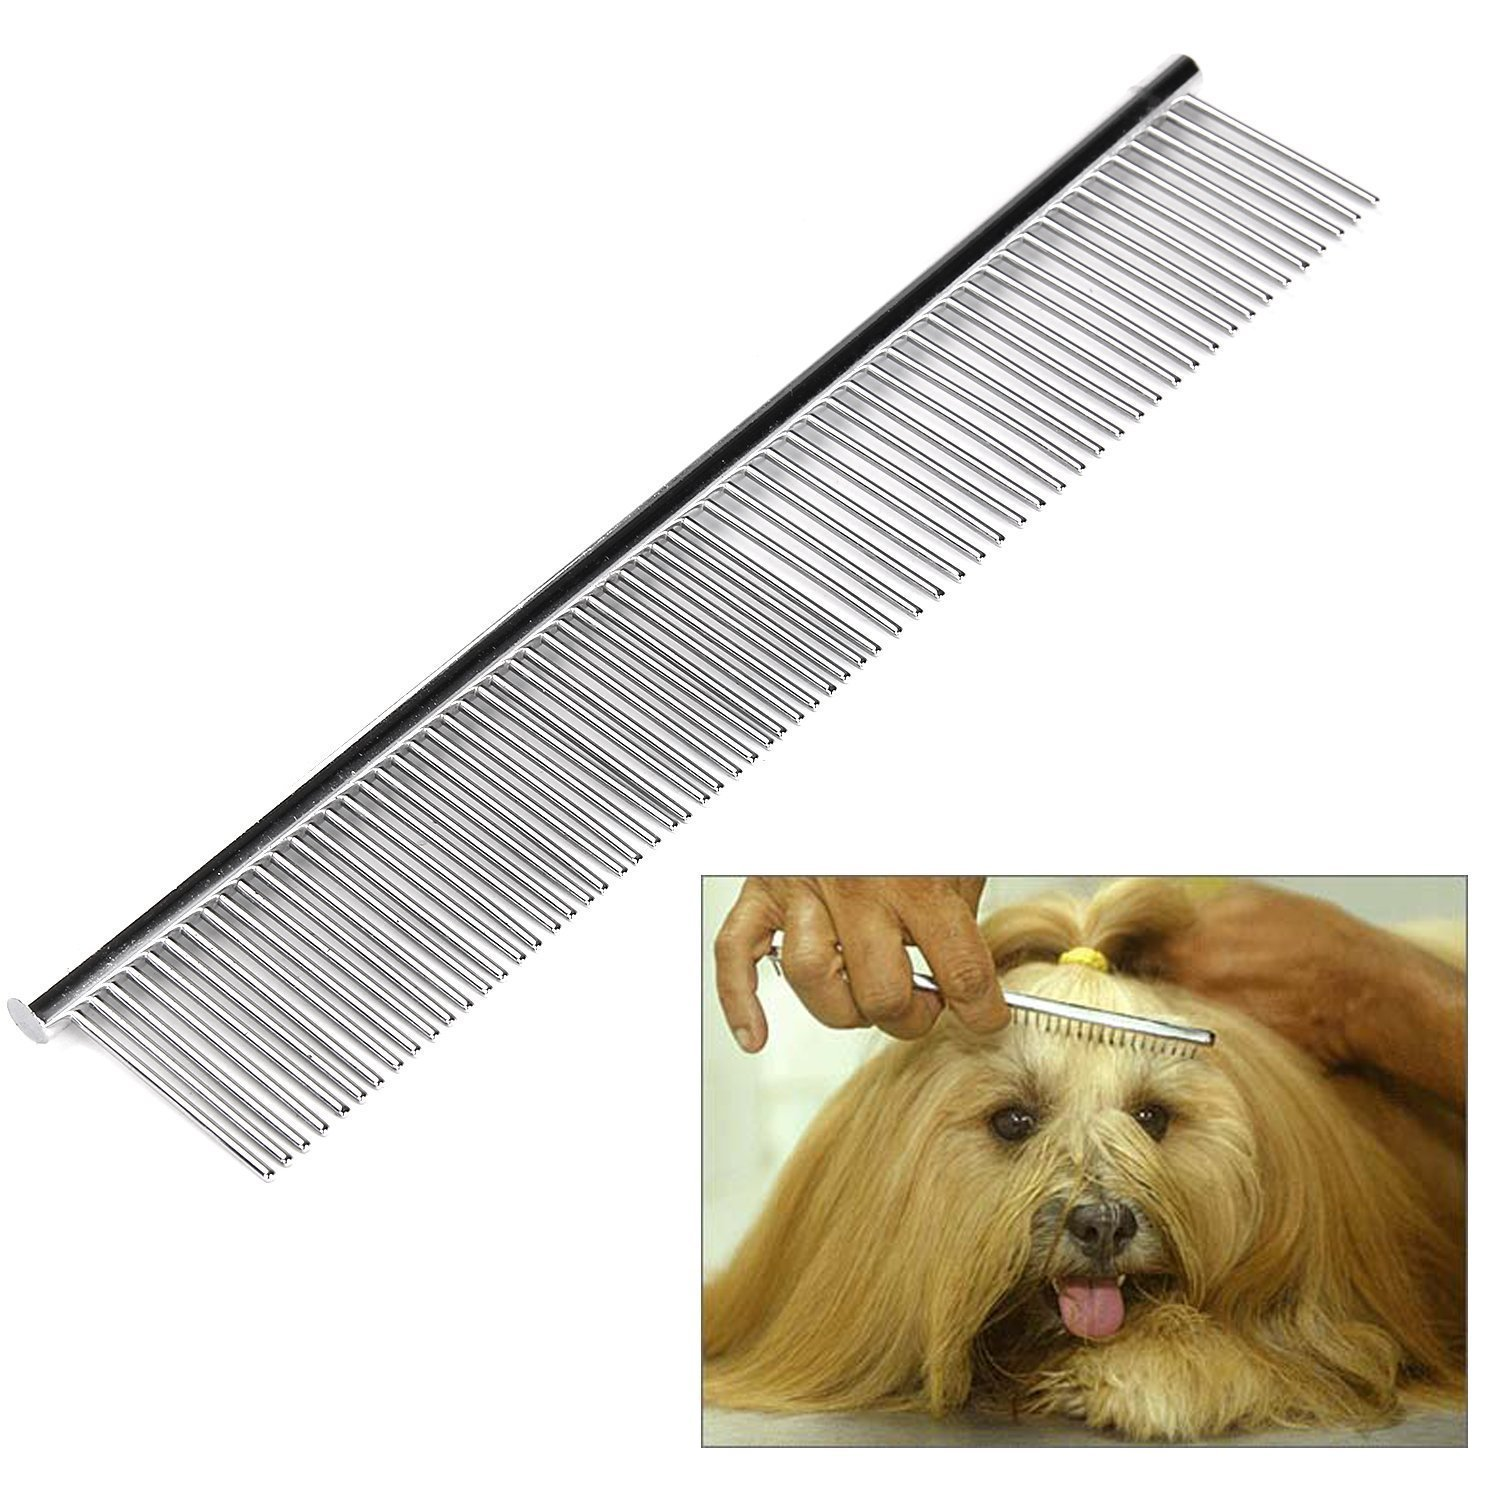 Stainless Steel Pet Comb Metal For Dogs Cats Pet Puppy Shedding Grooming Tool Massaging Flea Brush Rake with Red handle (2 Pack)